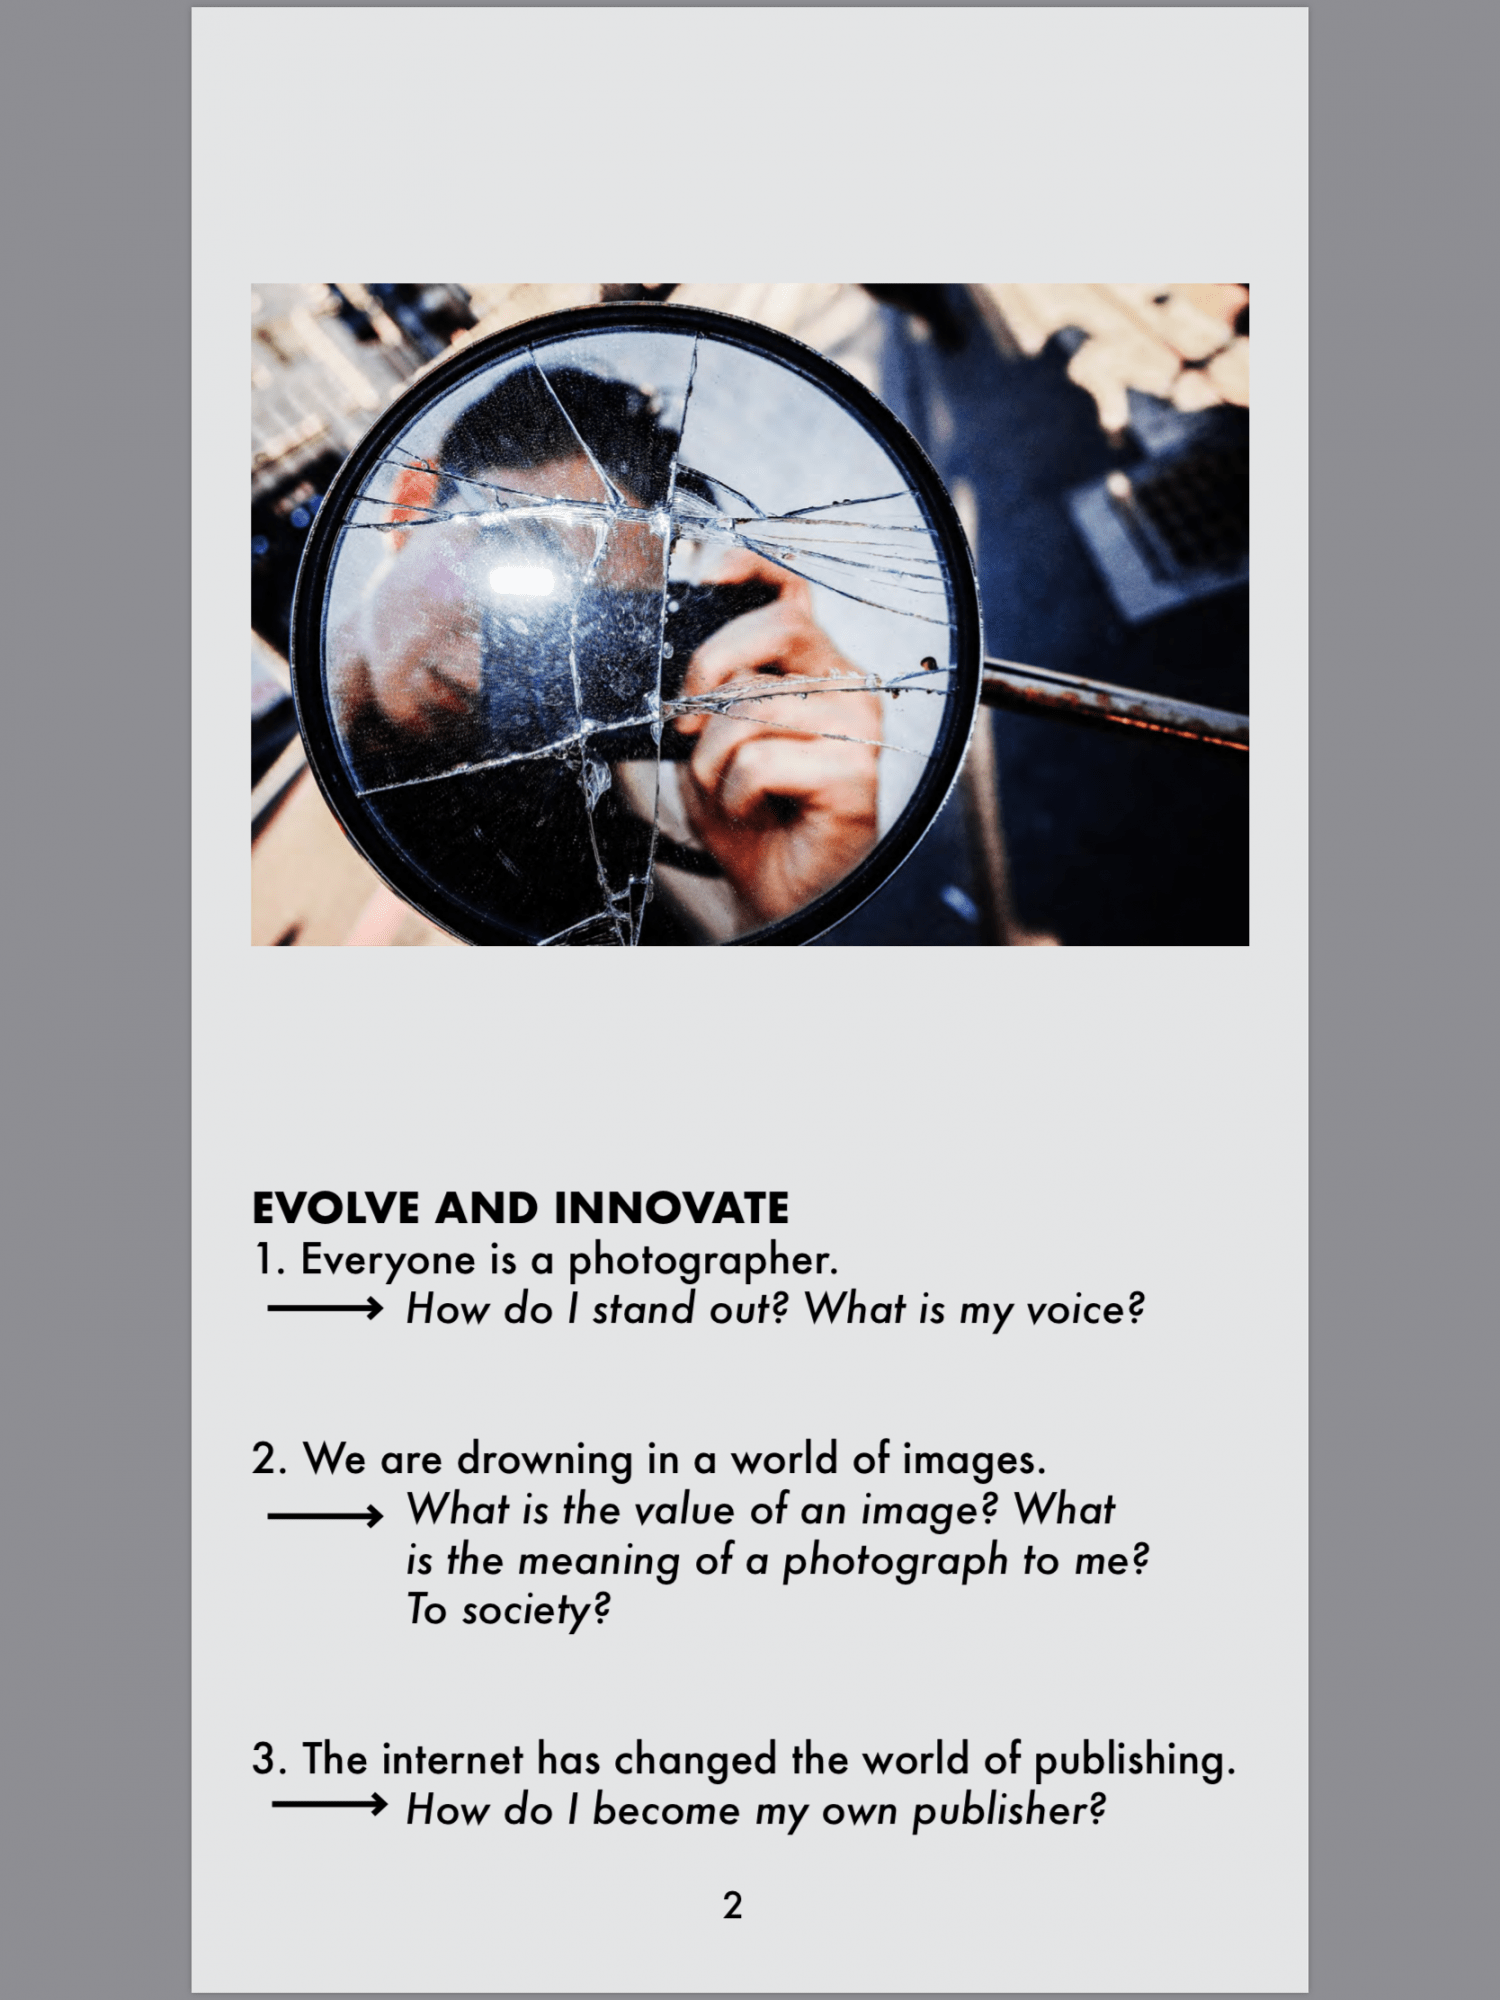 Evolve and innovate modern photographer